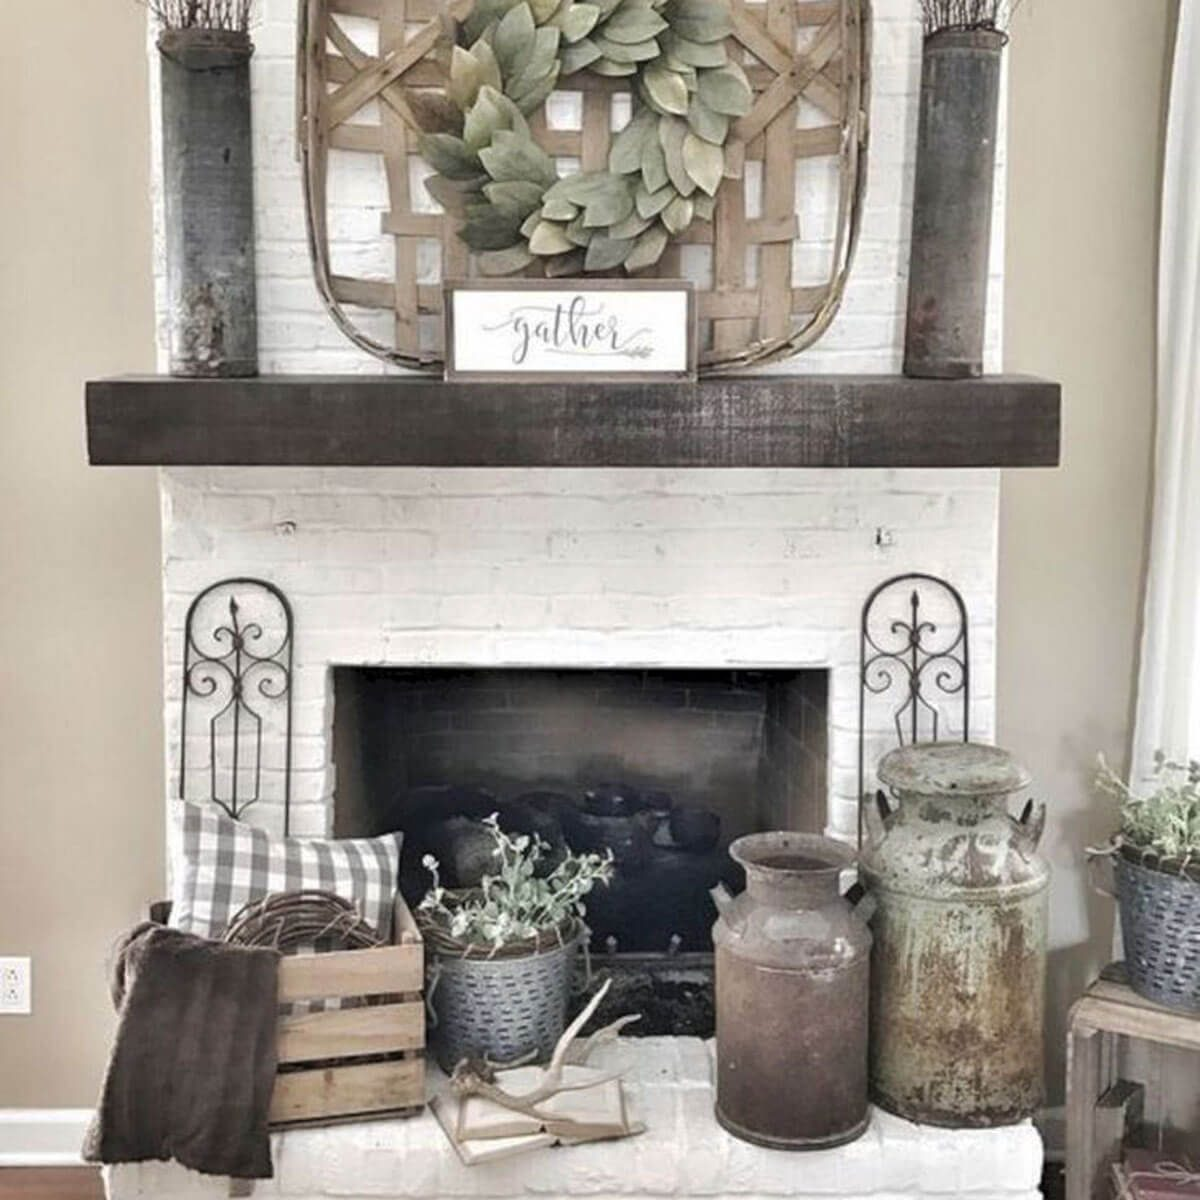 12 ideas for a non functioning fireplace the family handyman prop up some art solutioingenieria Images